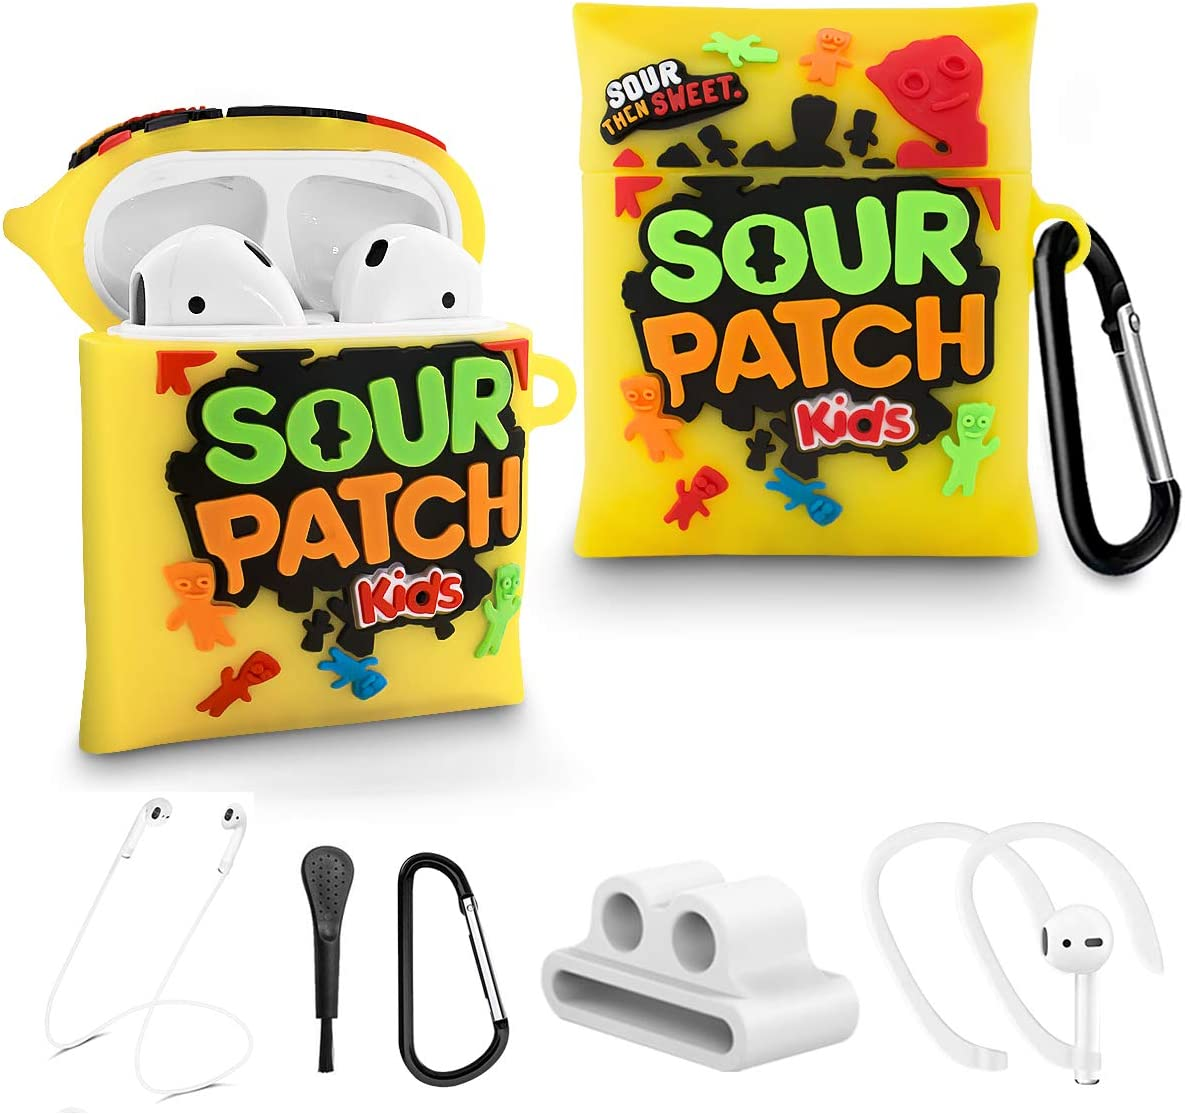 Alquar for AirPods 2/1 Candy Kids Case, 6 in 1 Accessories Set Protective Cover, Food Cute Cartoon Funny Airpods Case for Girls Boys Kids with Watch Band/Anti-Lost Lanyard/Brush/Ear Hooks/Keychain